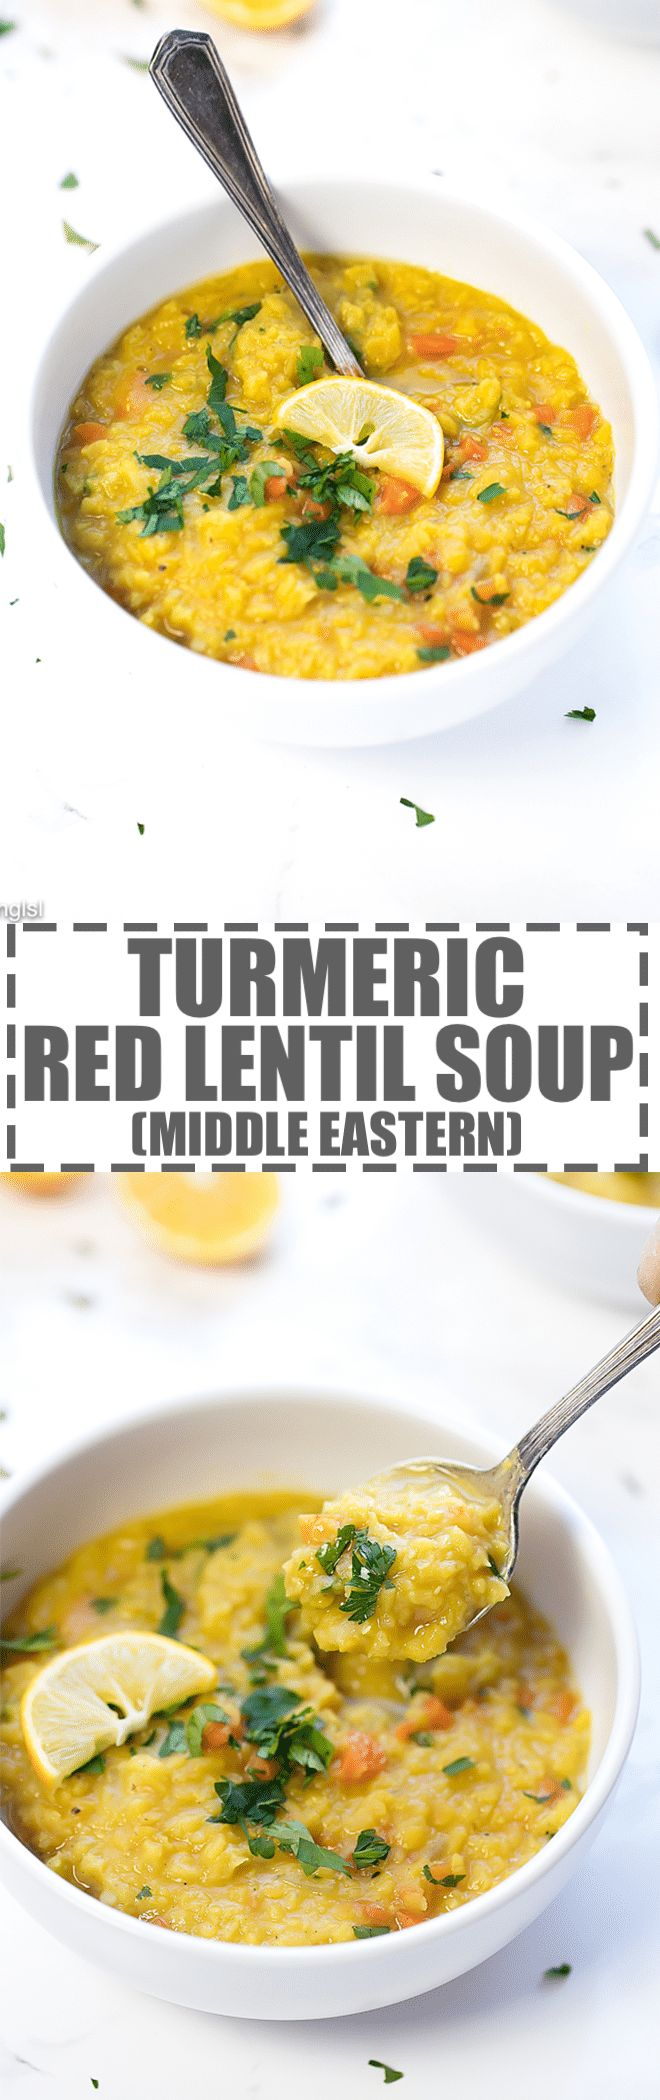 Middle Eastern Lentil Soup Recipe - just a few basic ingredients to make this delicious, flavorful and nutritious soup. Great as a side soup or a light meal. Packed with Middle Eastern flavors, due to the combination of two very distinct spices - turmeric and cumin. via @cookinglsl